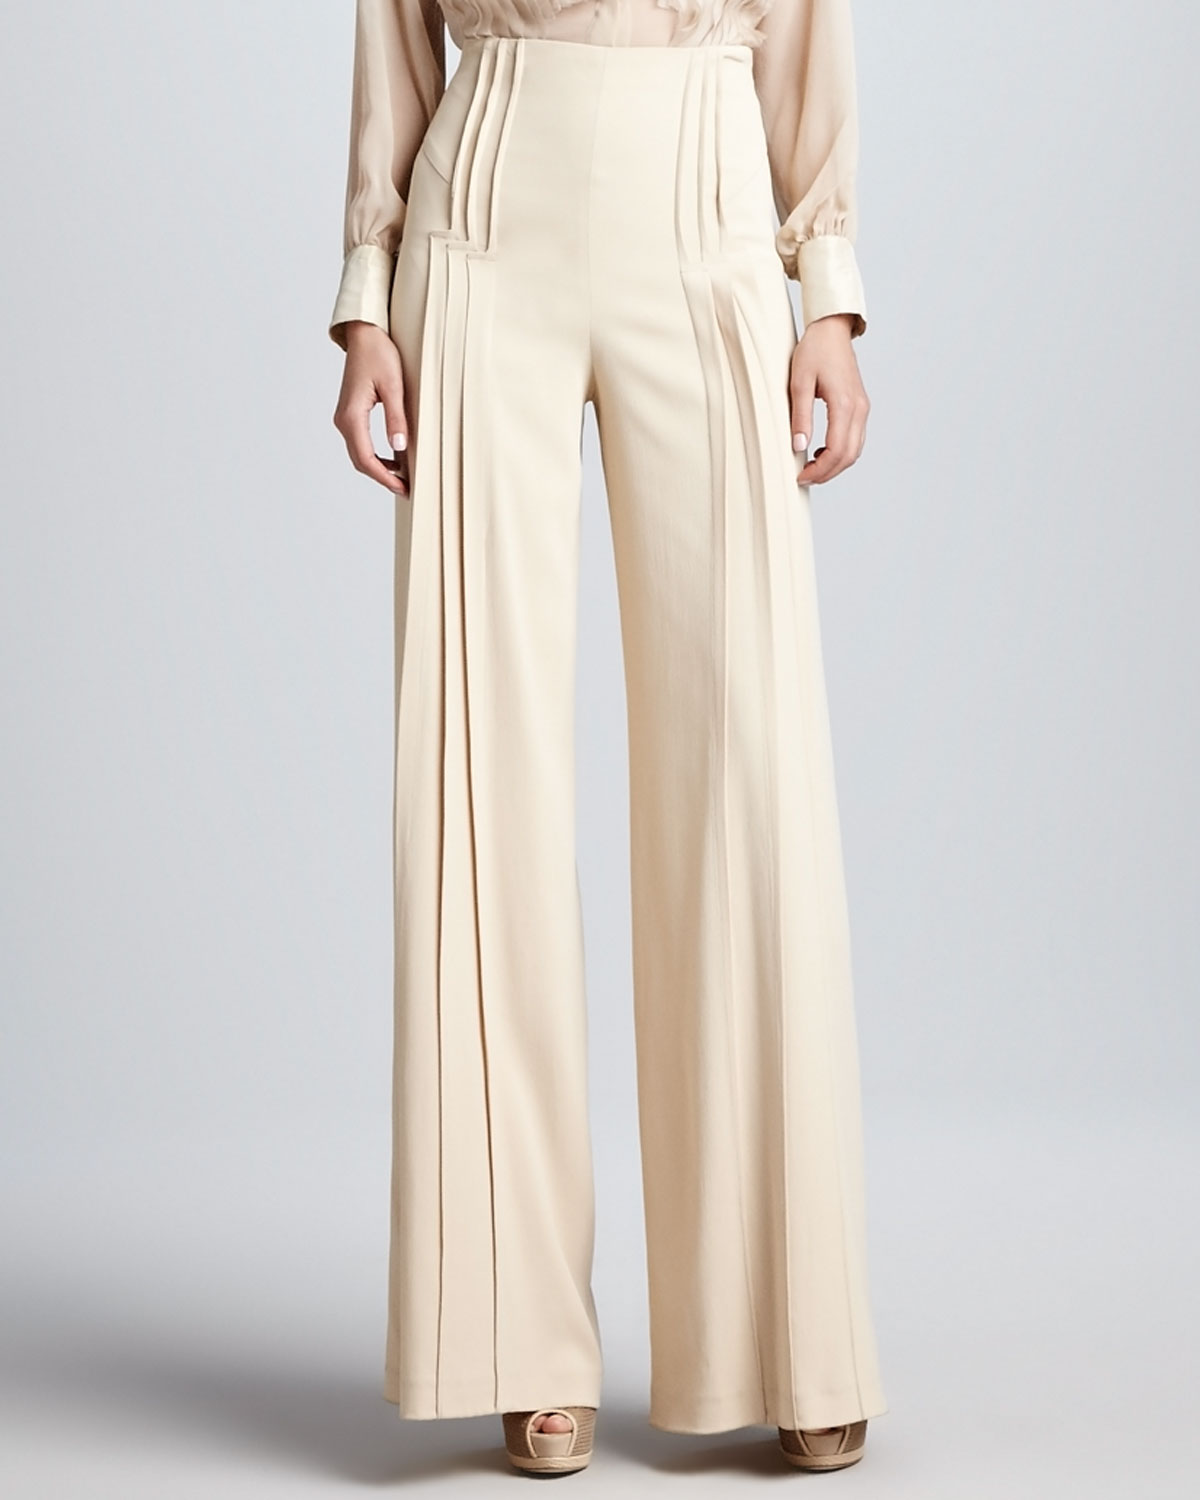 Zac posen Pleated Wideleg Pants Beige in Natural | Lyst